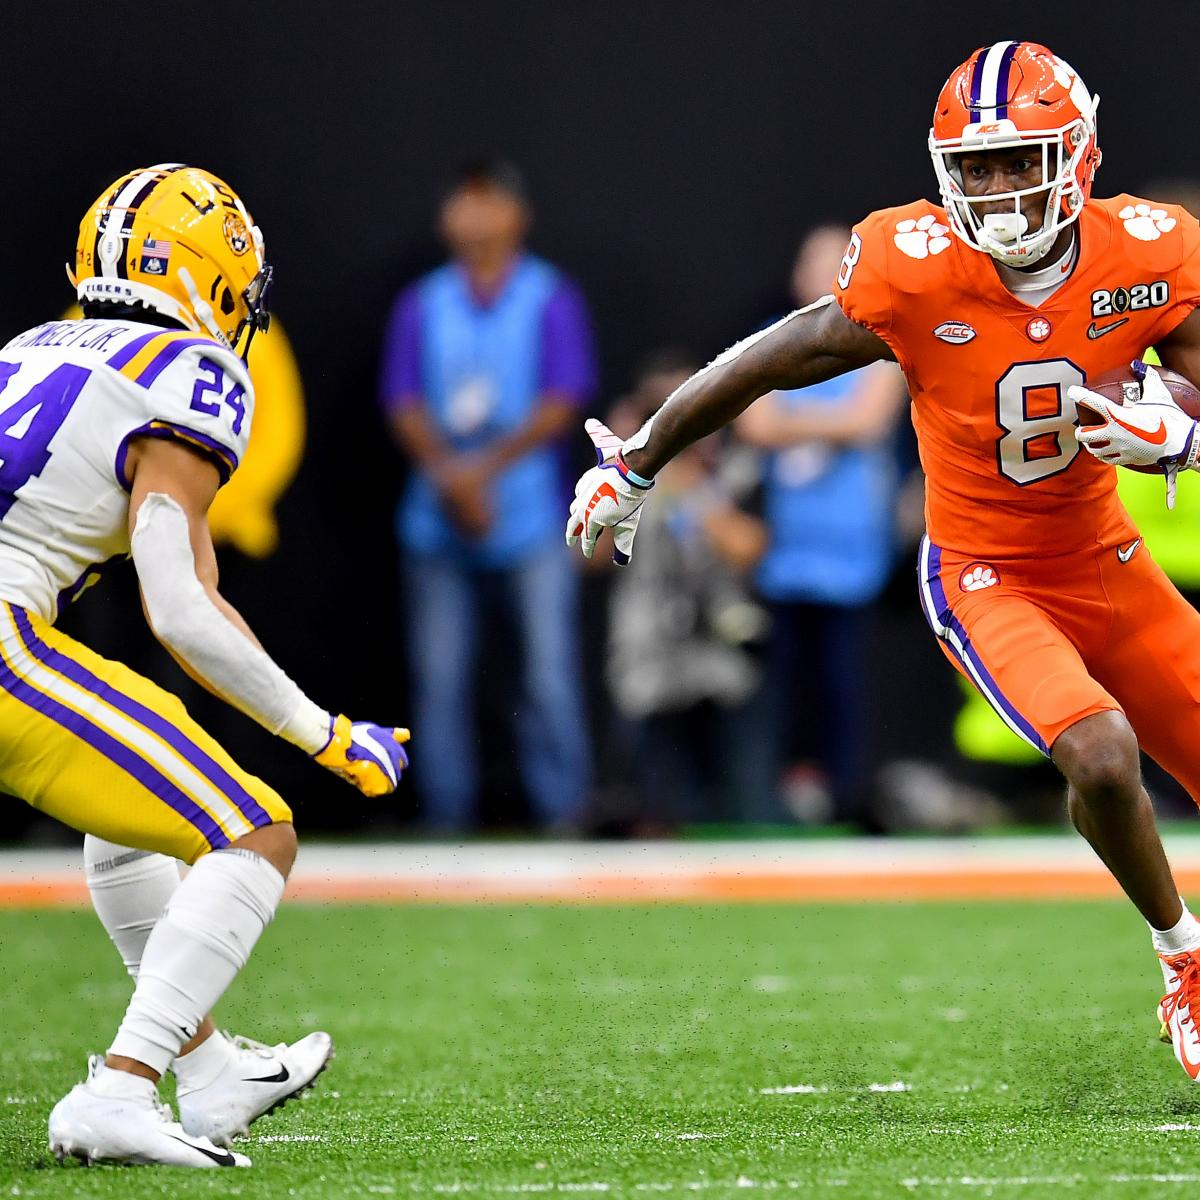 10 Teams That Actually Have a Chance to Win the 2020 College Football Playoff